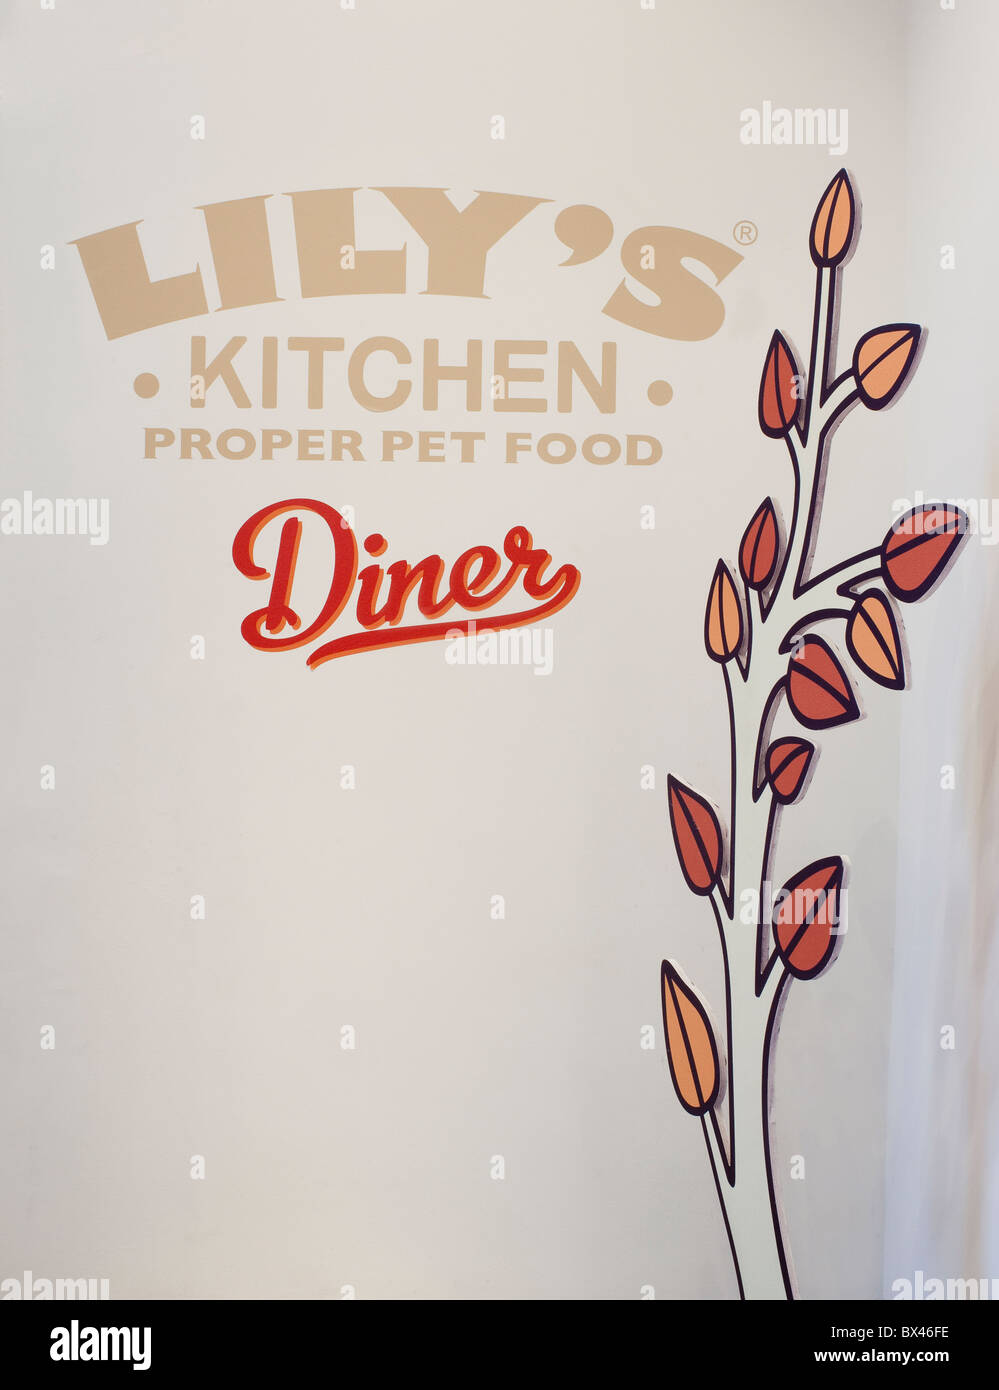 Lily's Kitchen Diner. The first pop-up doggy diner, London UK - Stock Image